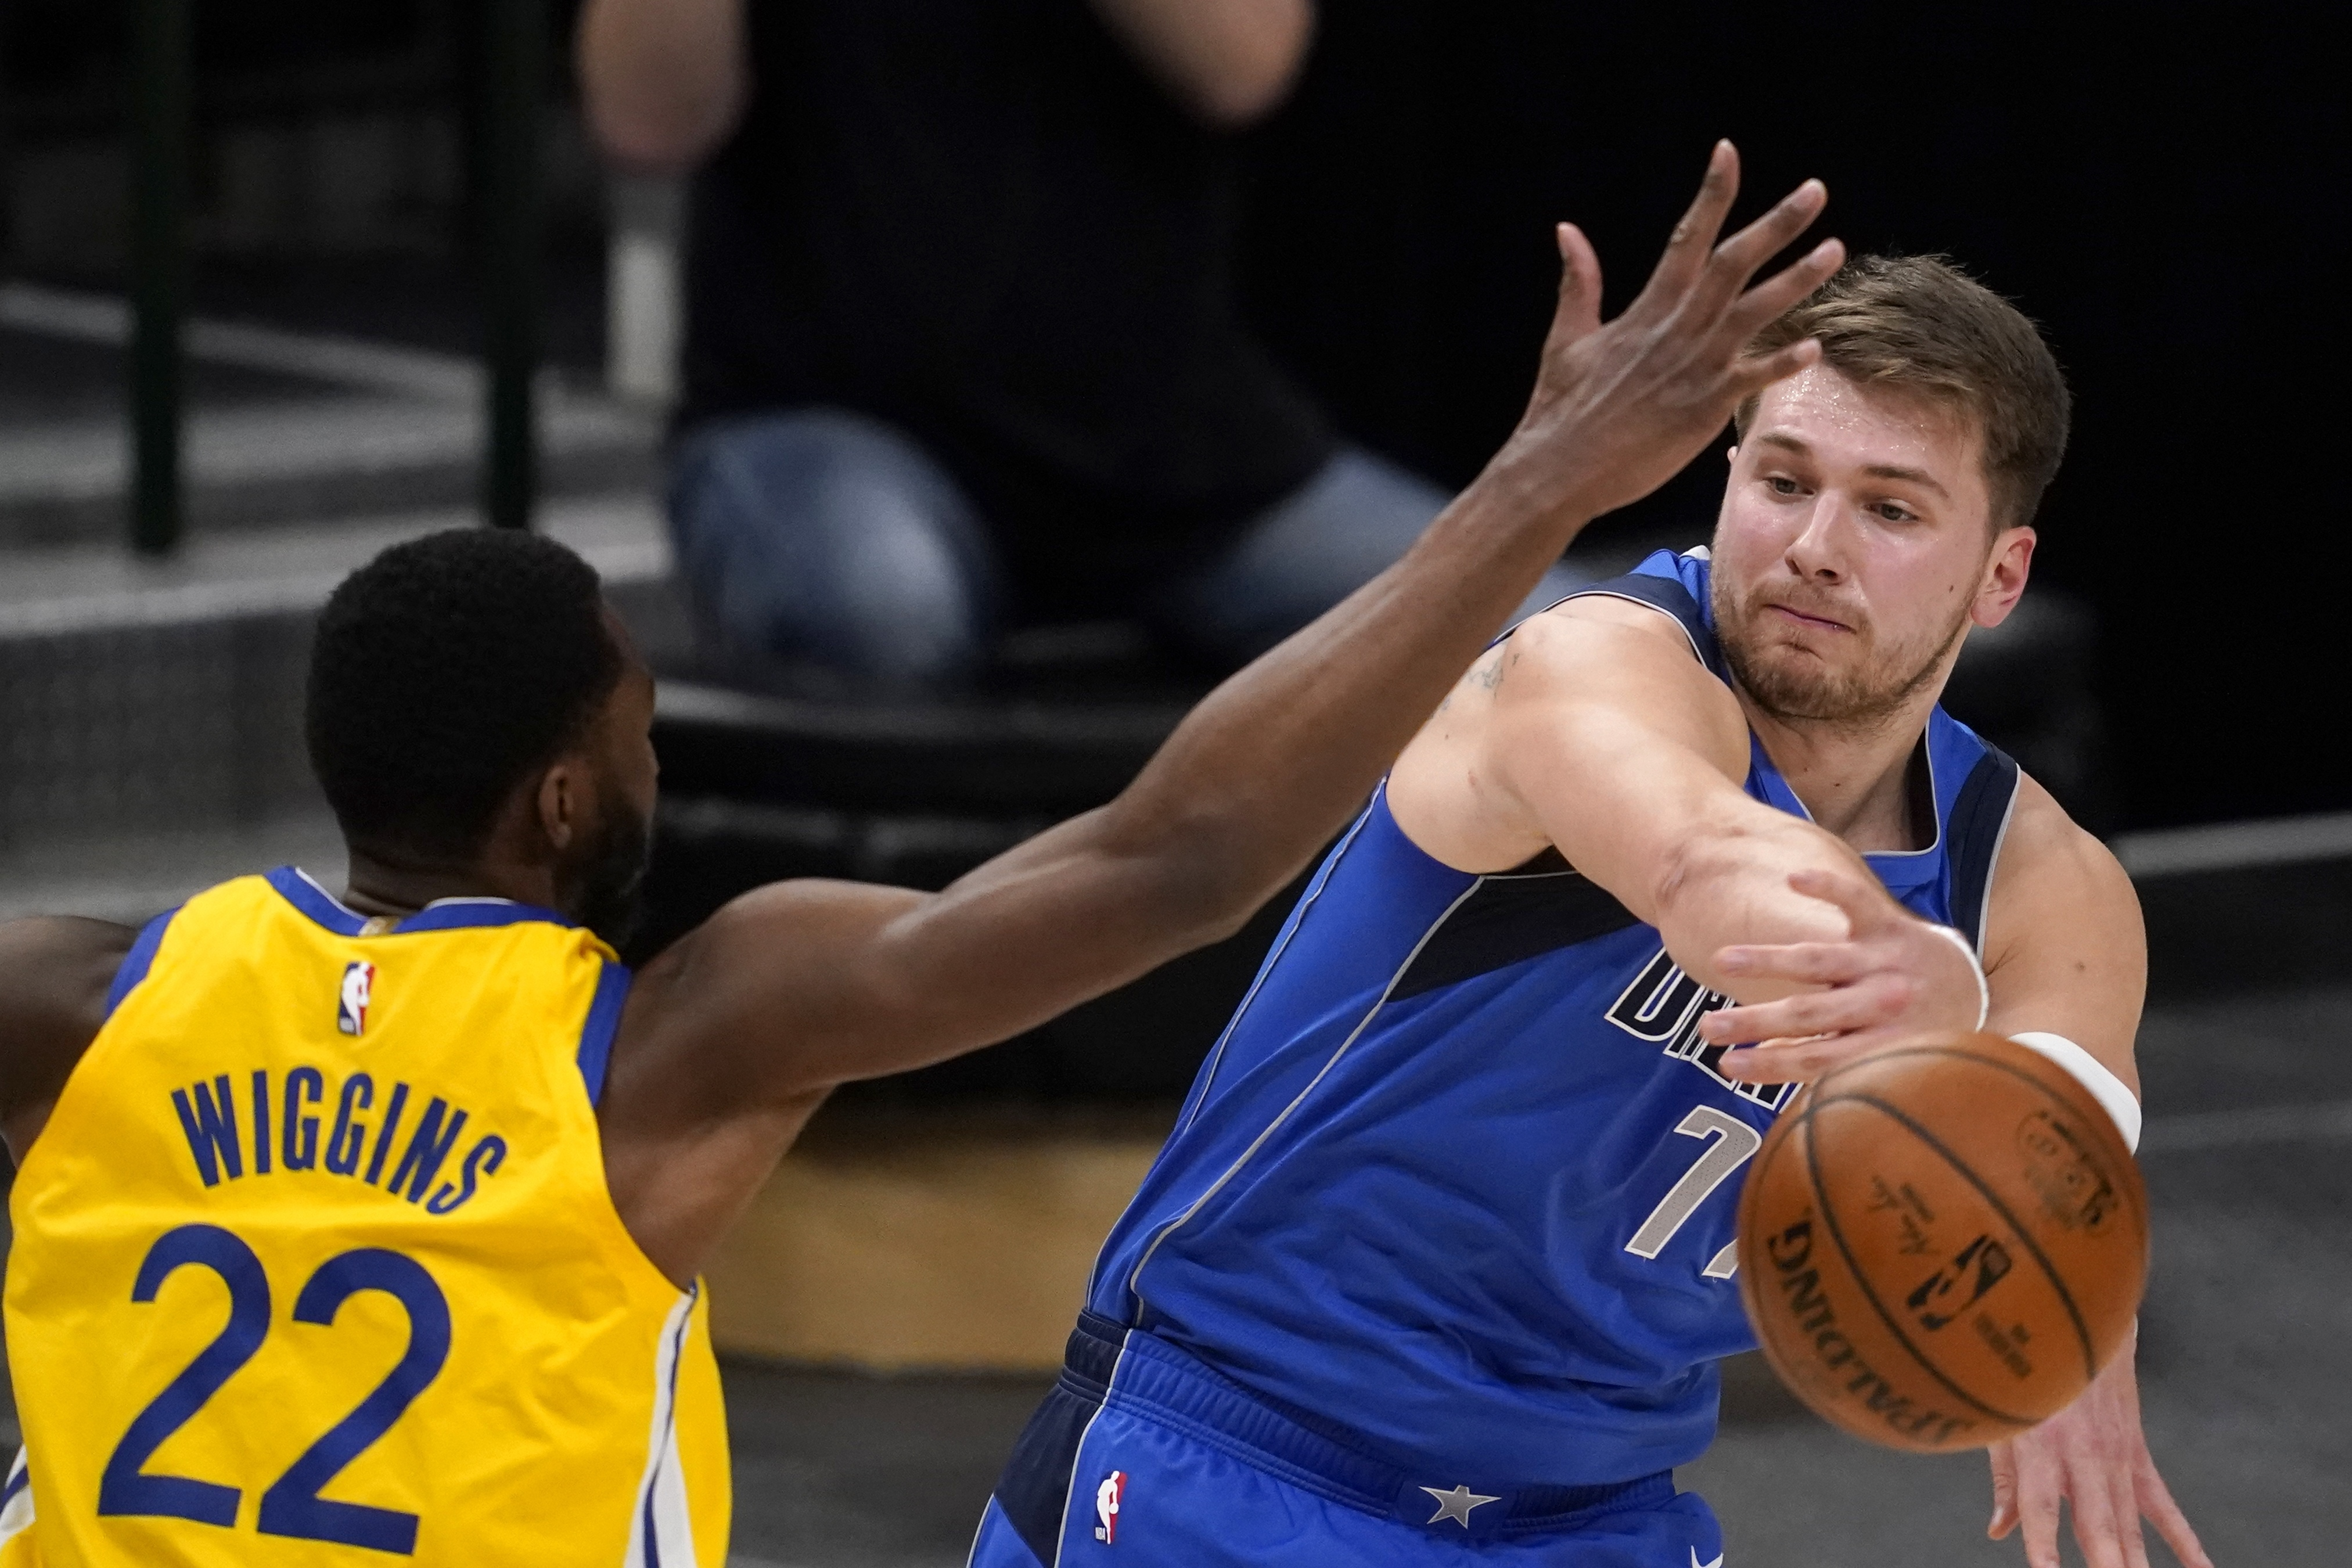 Golden State Warriors' Andrew Wiggins (22) defends against a pass by Dallas Mavericks' Luka Doncic during the first half of an NBA basketball game in Dallas, Thursday, Feb. 4, 2021.